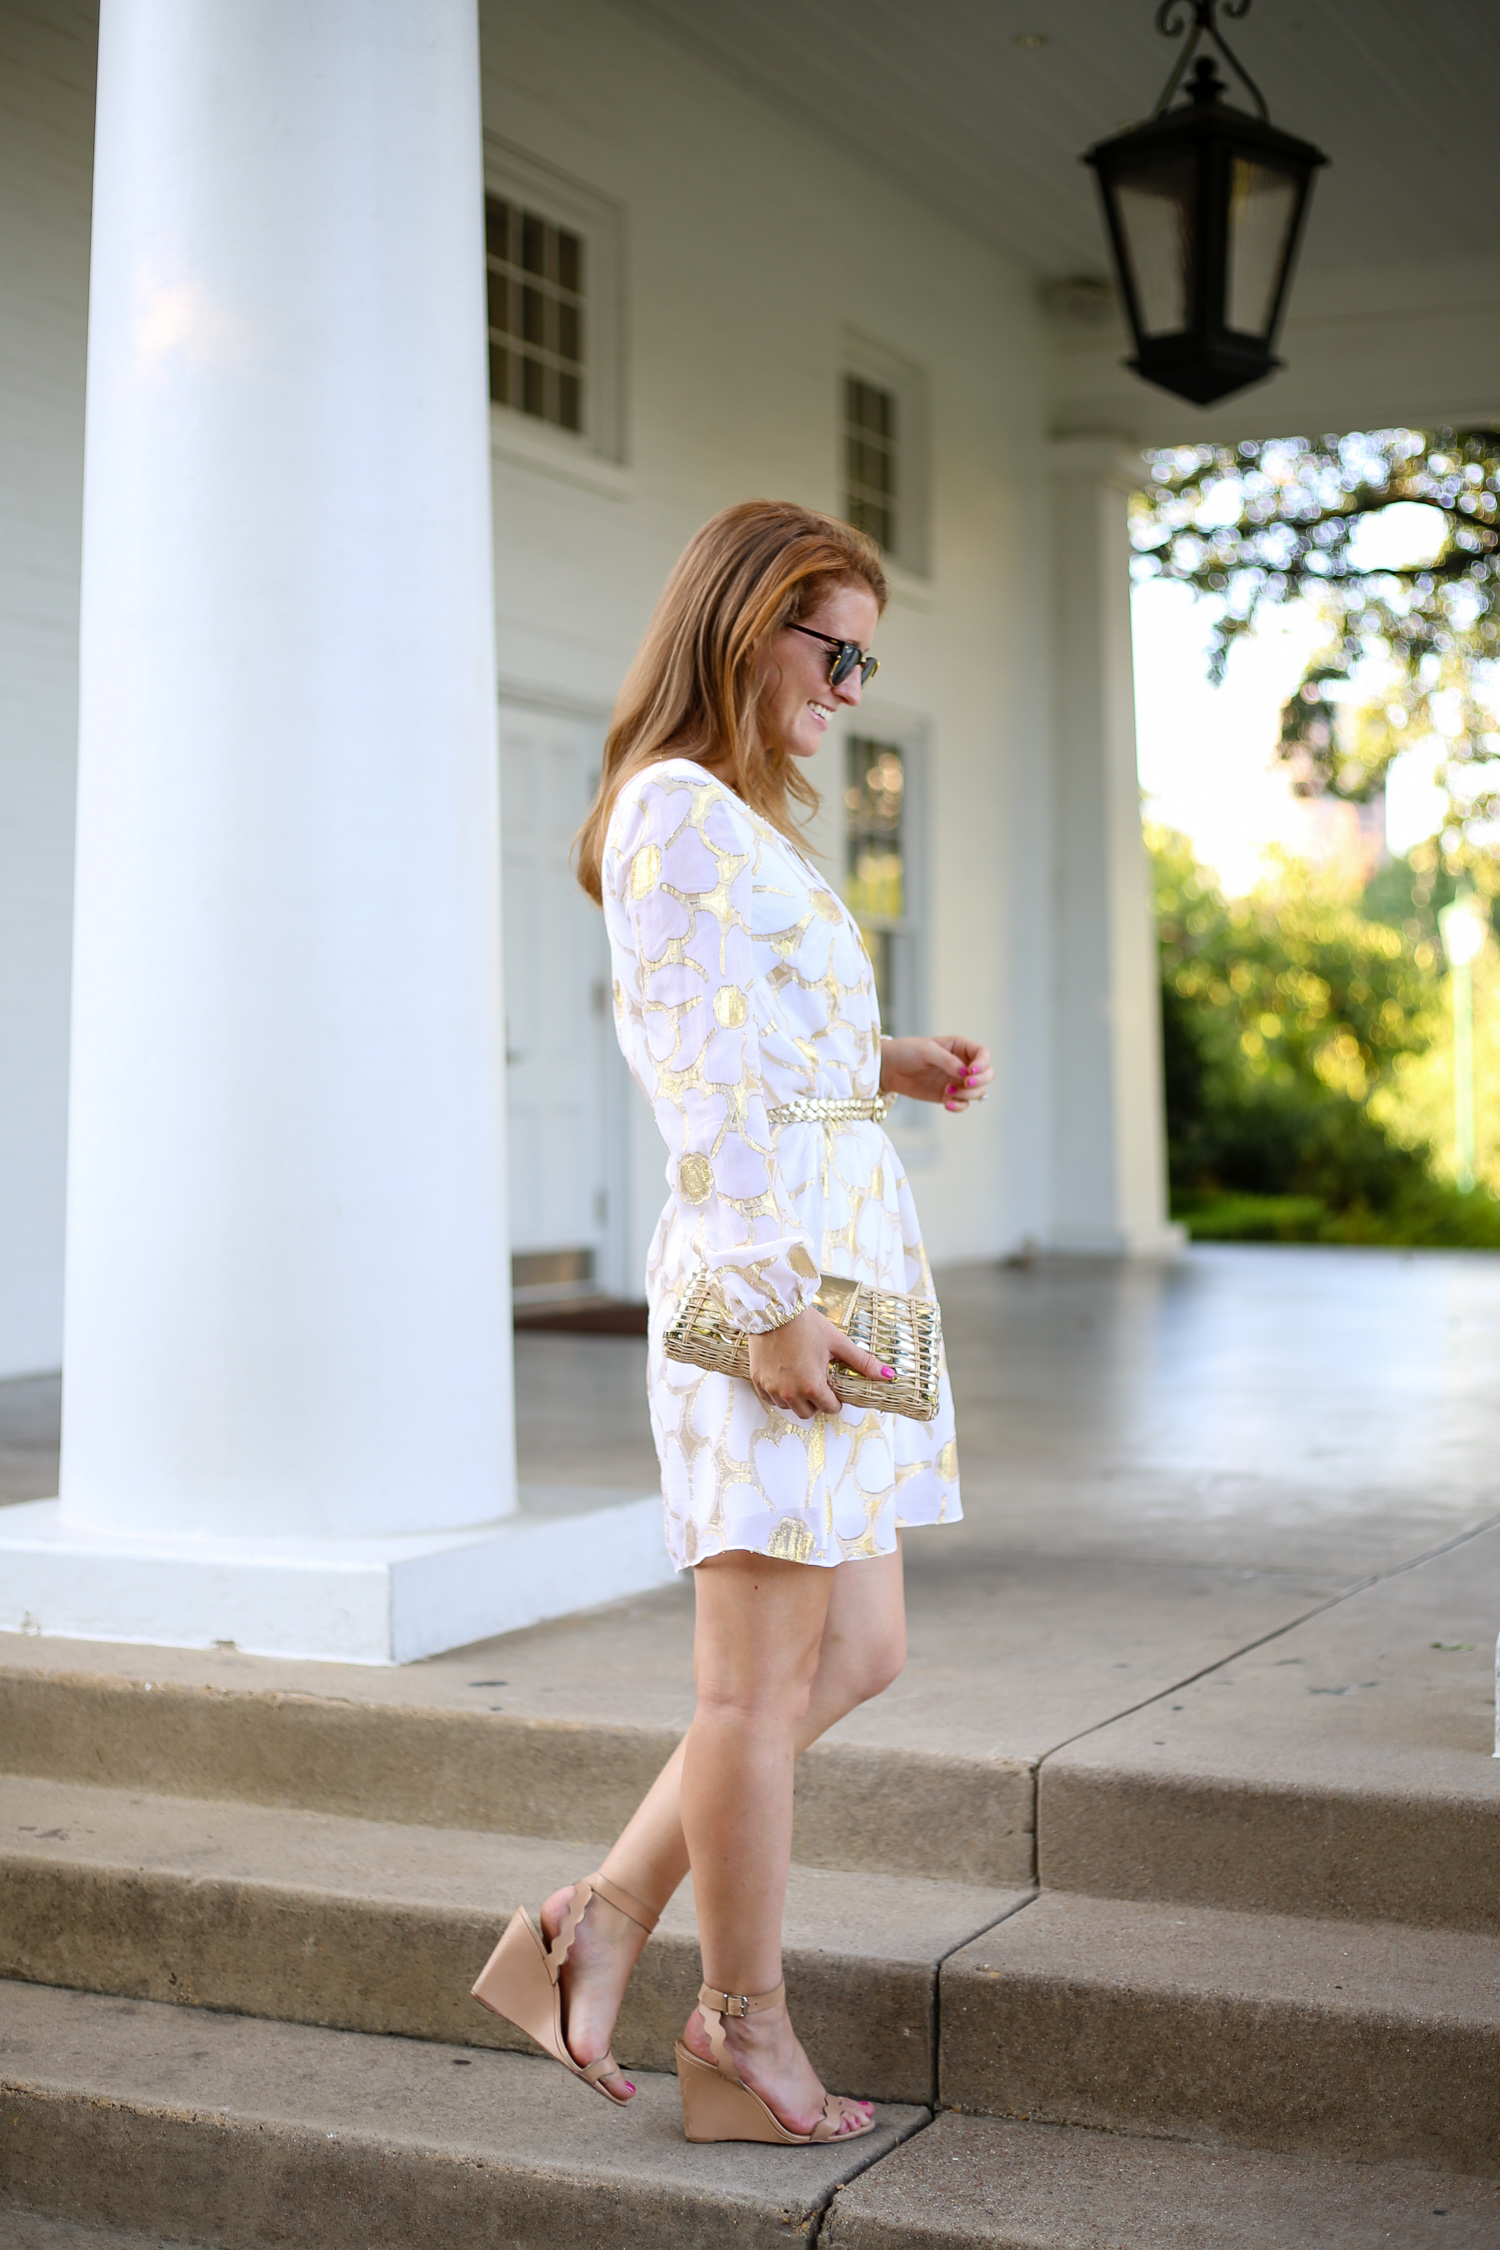 a221cb3b42fb8f lilly-pulitzer-colby-sleeved-tunic-dress -and-loeffler-randall-piper-wedges-on-design-darling